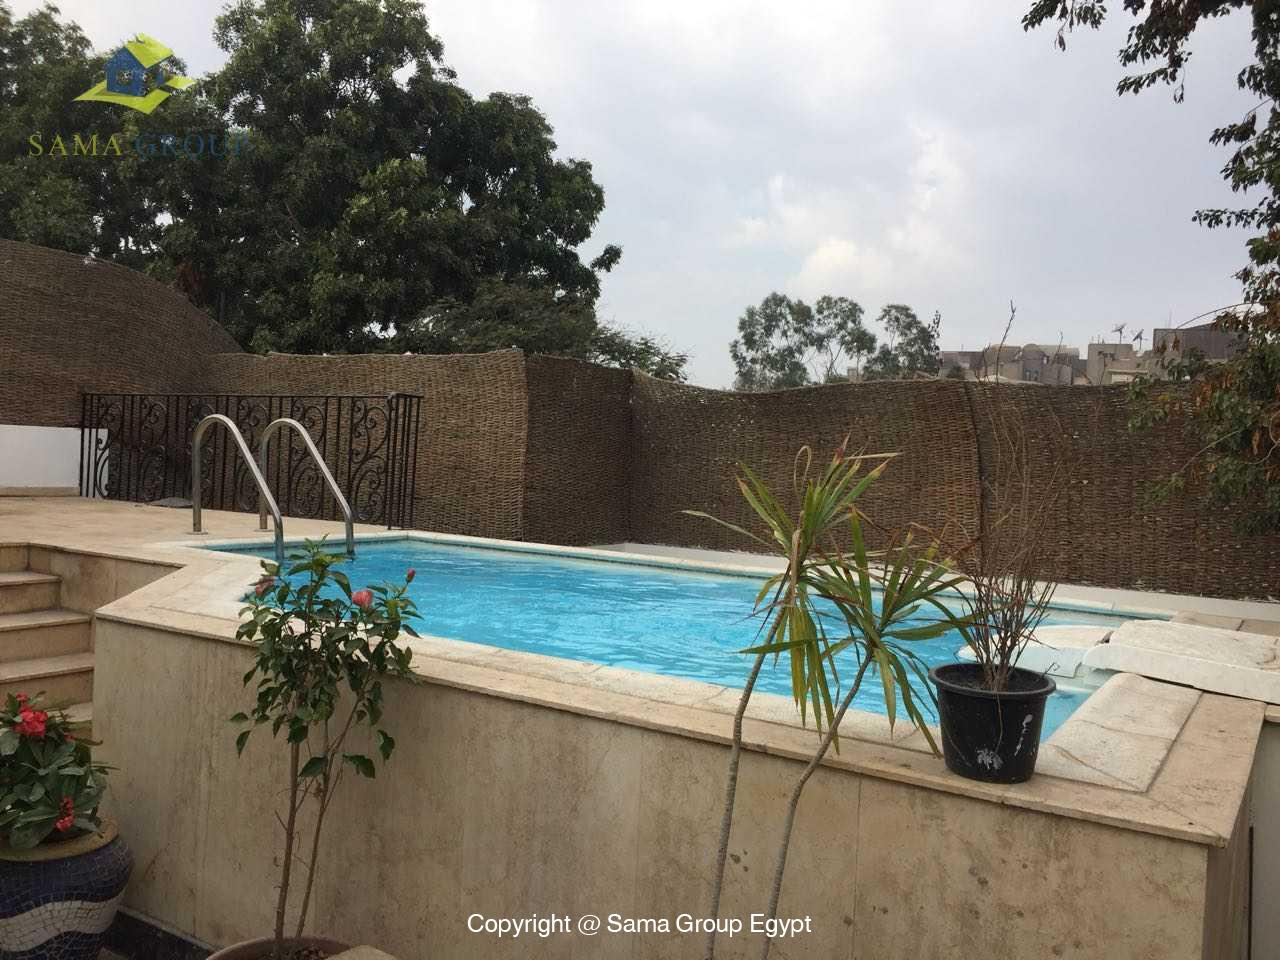 Penthouse Duplex For Rent In Maadi,Semi furnished,Penthouse Duplex NO #4